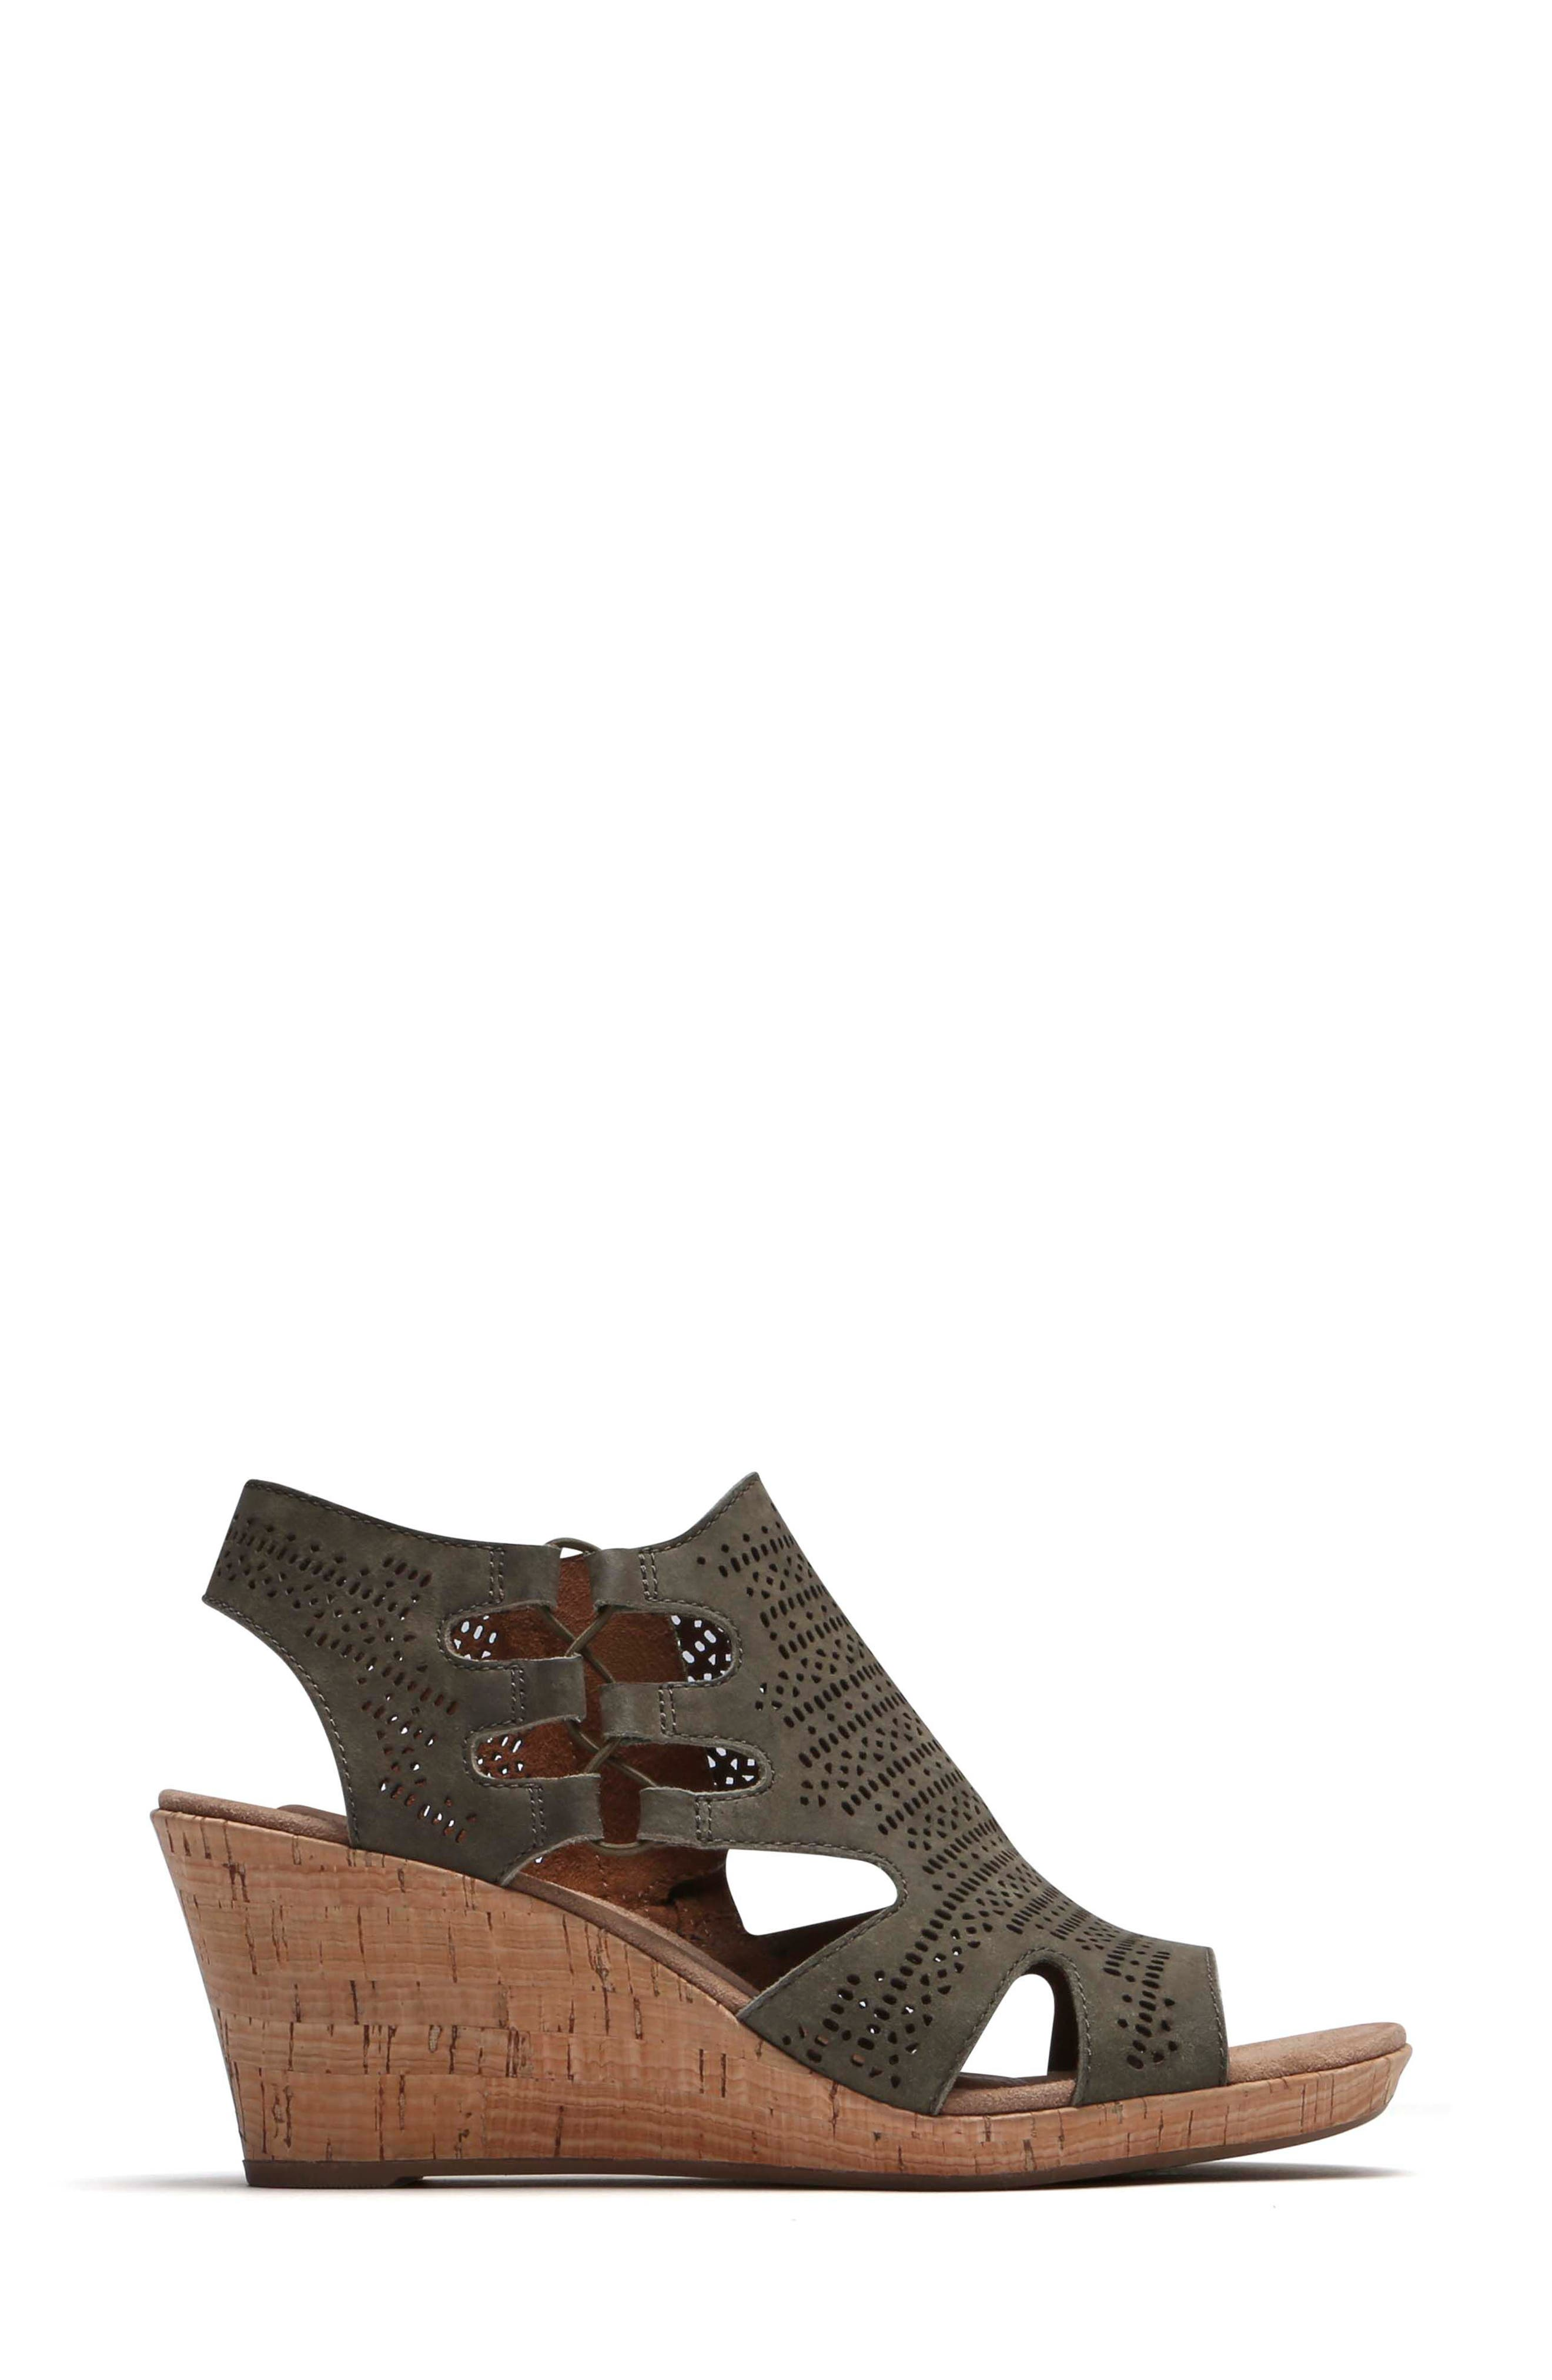 Janna Perforated Wedge Sandal,                             Alternate thumbnail 3, color,                             Green Nubuck Leather